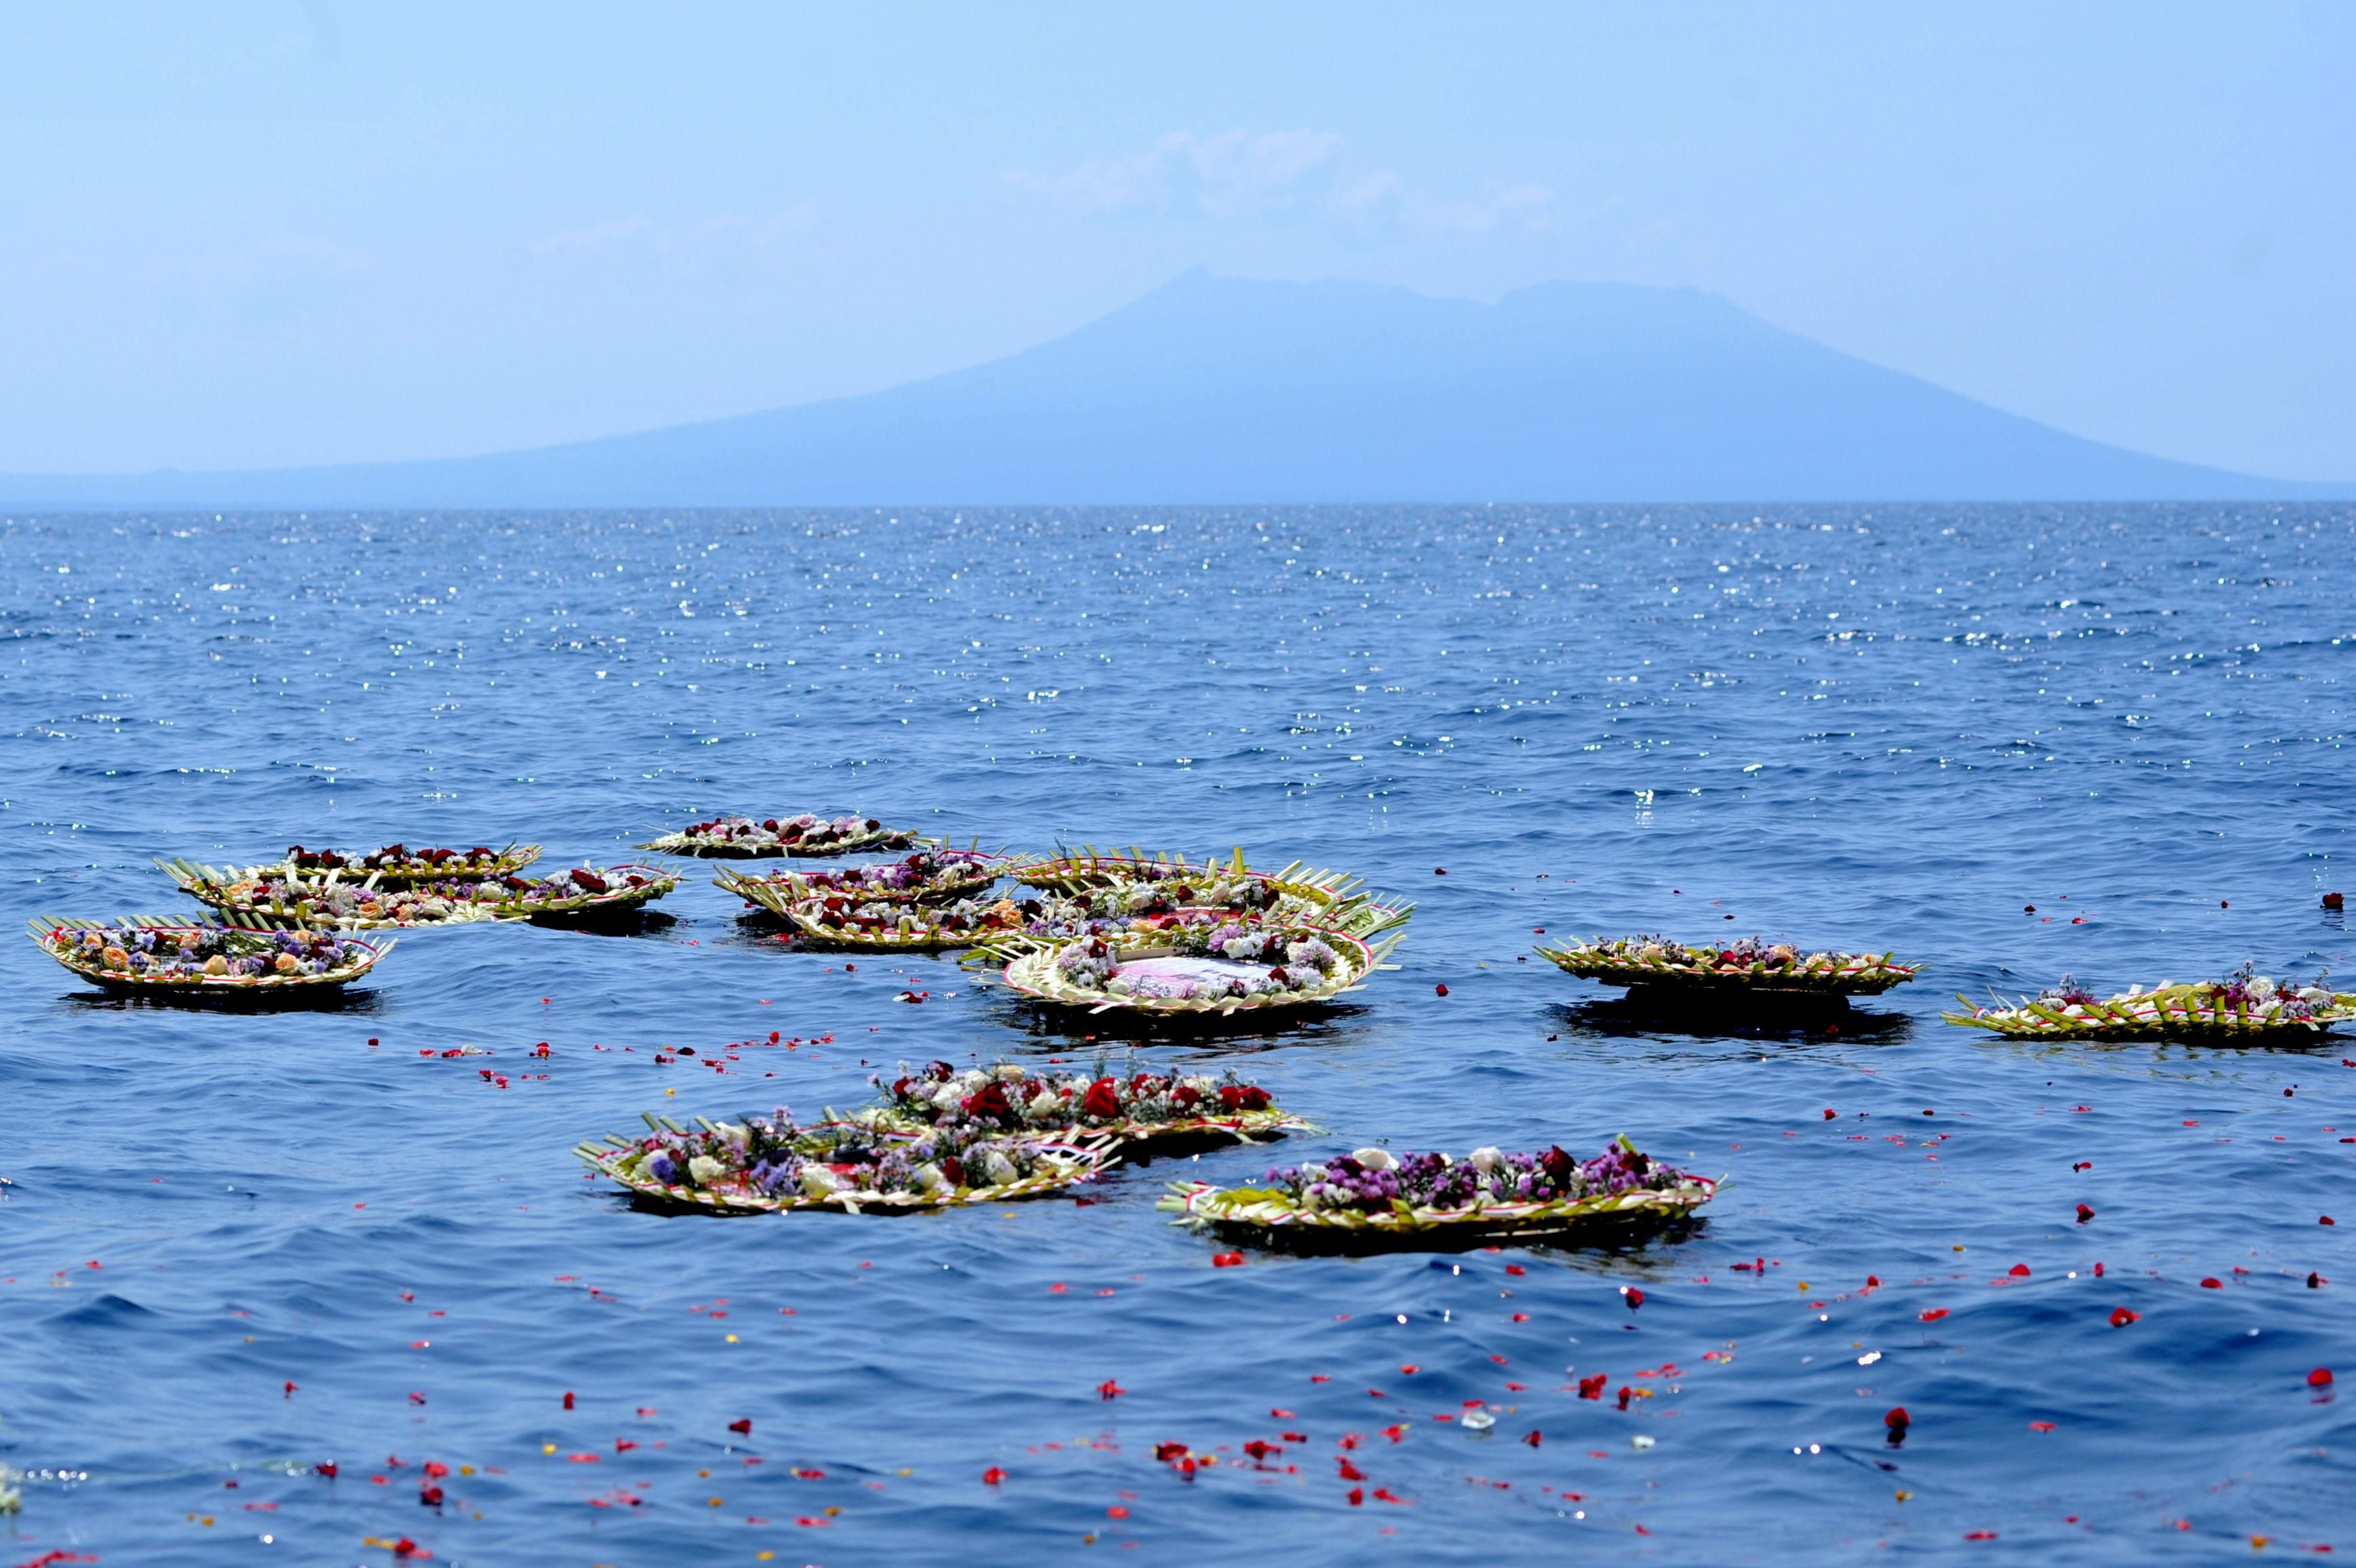 Flowers and petals with names of the sunken KRI Nanggala-402 submarine crew members are seen at the sea near Labuhan Lalang, Bali, Indonesia April 26, 2021